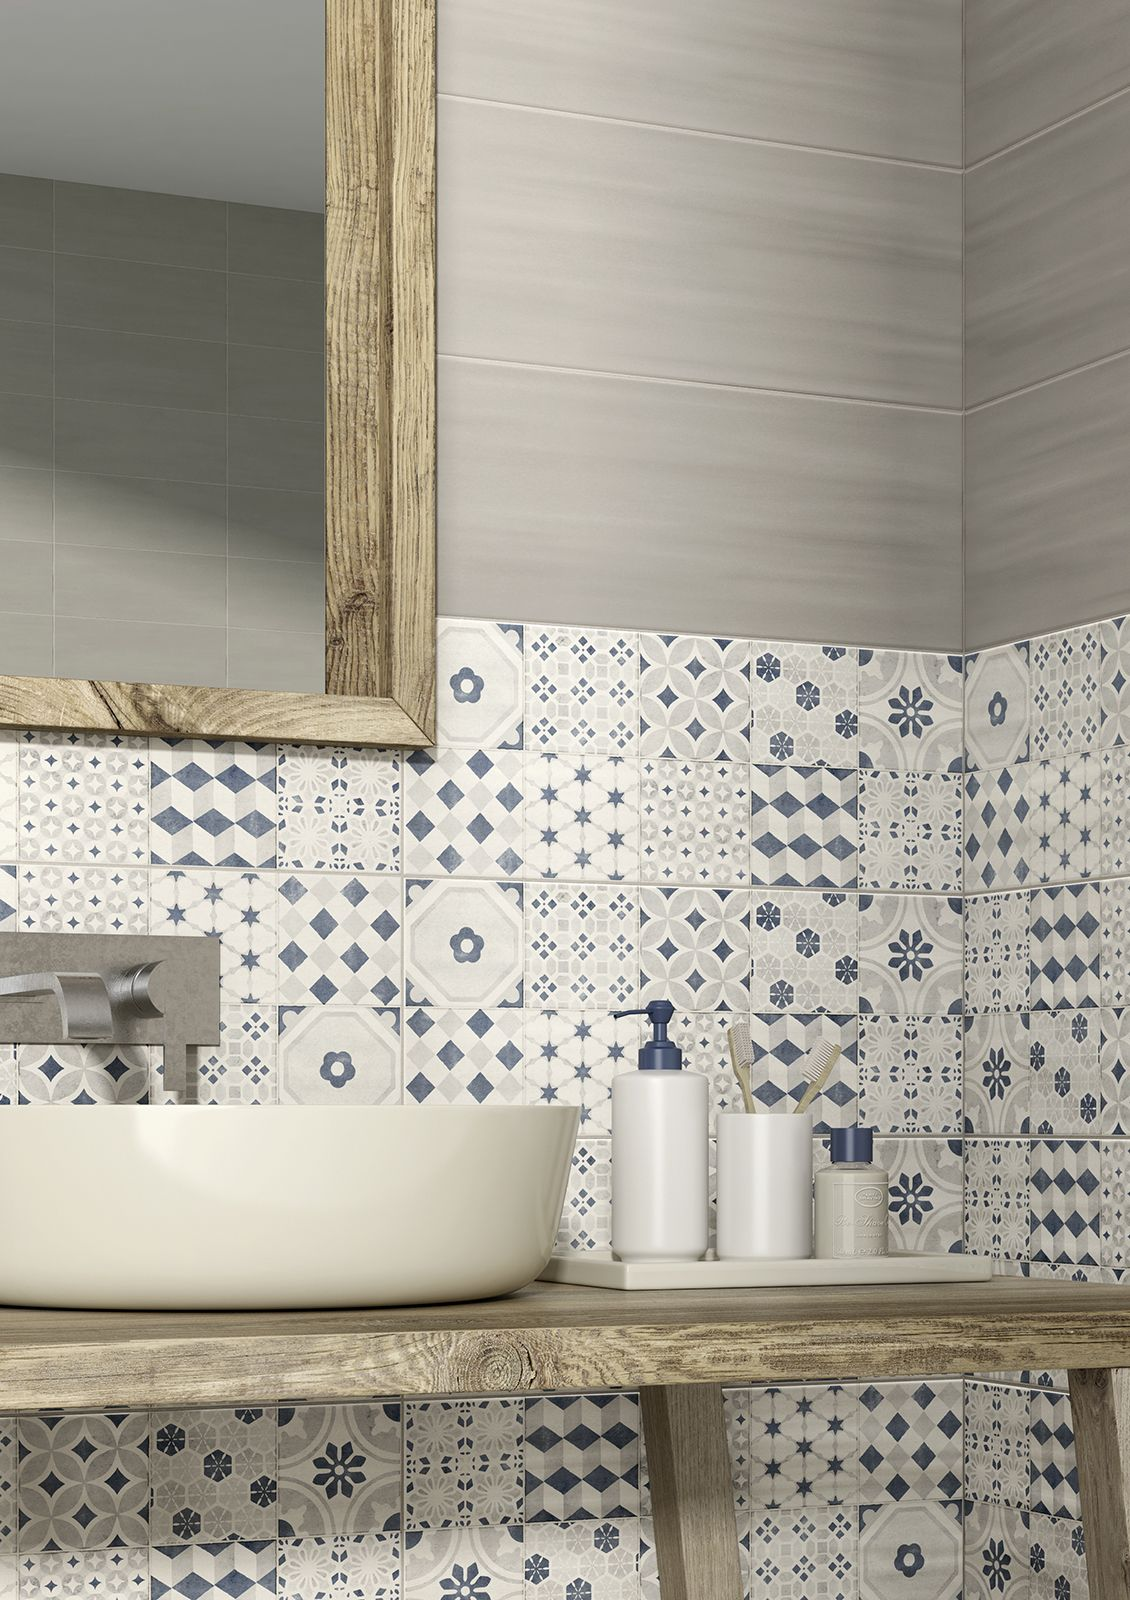 Paint carrellage en céramique Marazzi_7065 | A Life Imagined ...